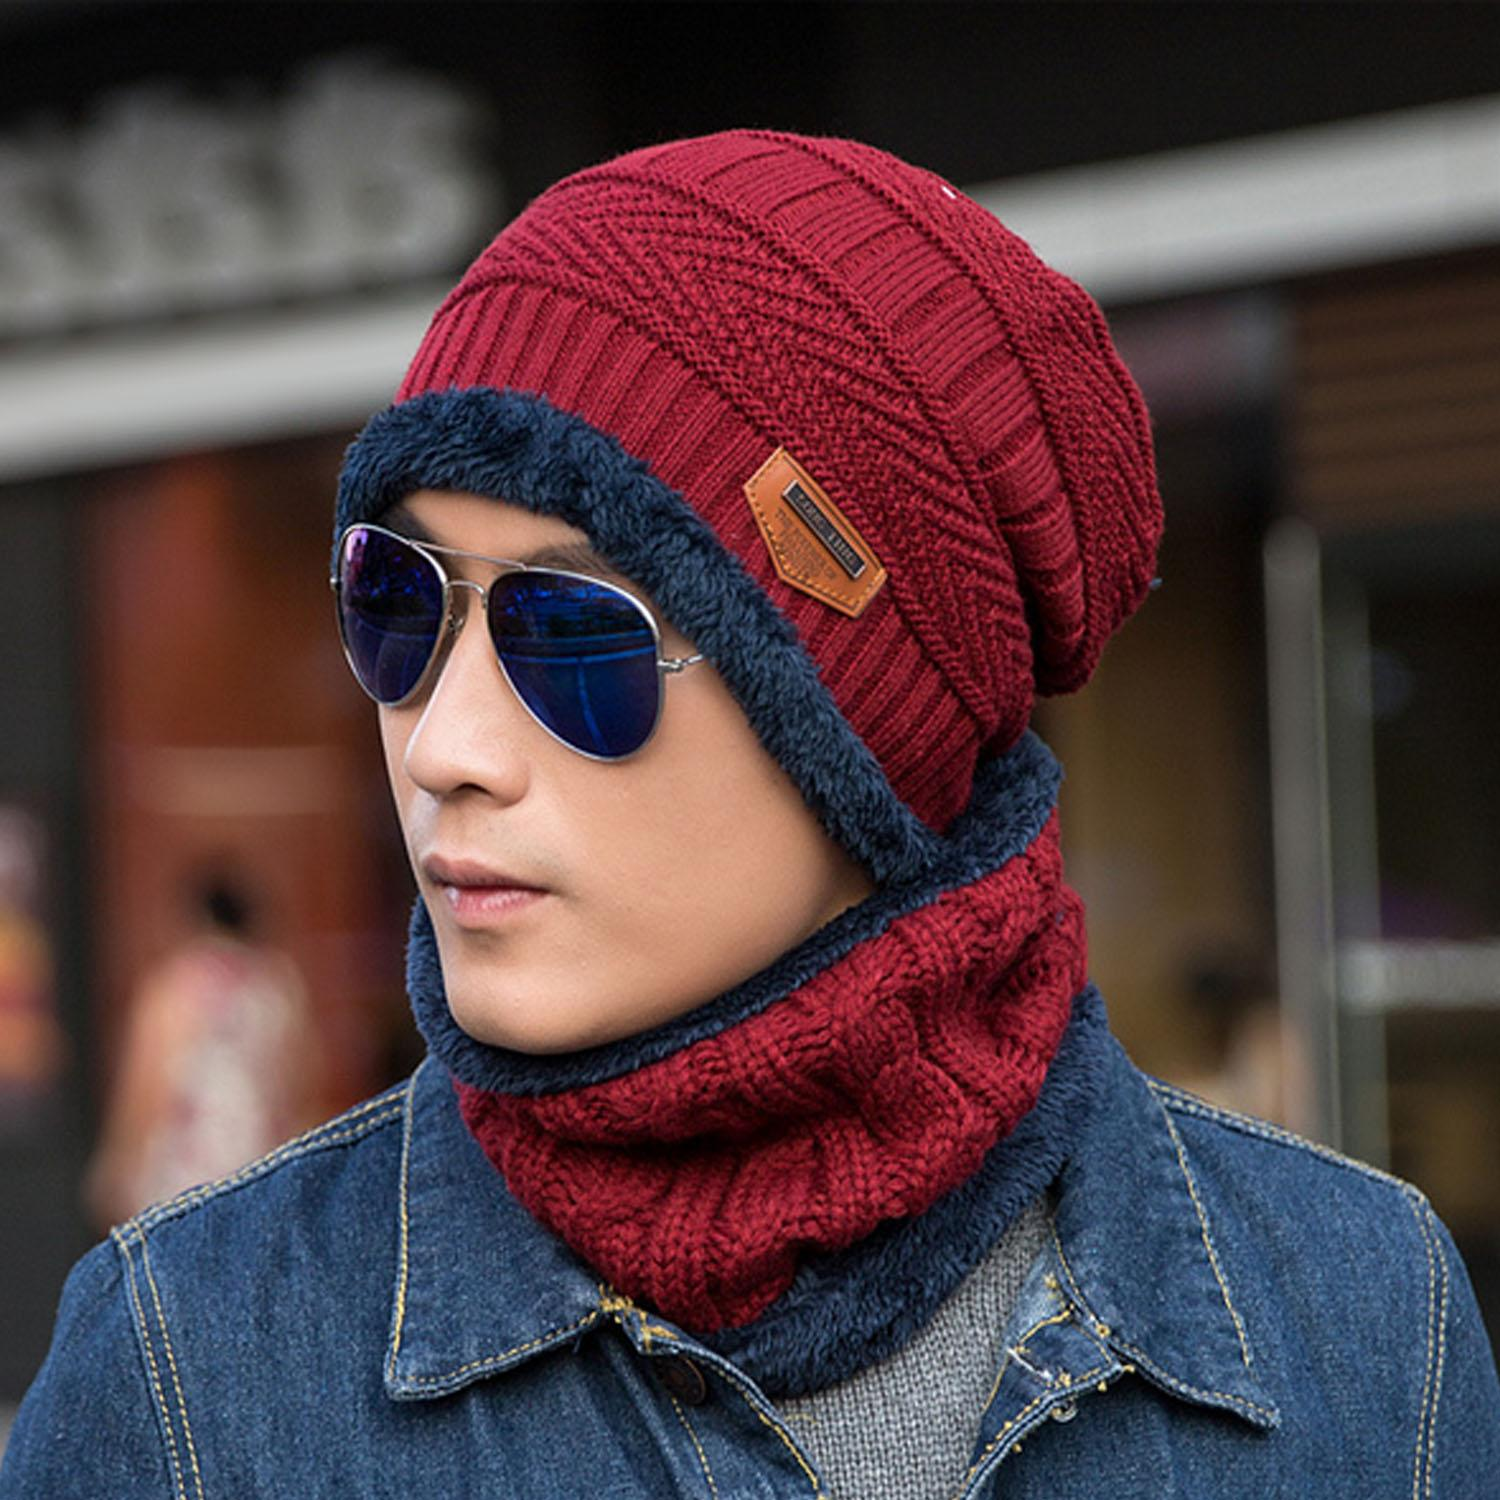 aa70a3dc925 2 PCS Unisex Winter Knit Hat and Neck Warmer Scarf Set Men Women Thick  Knitted Skull